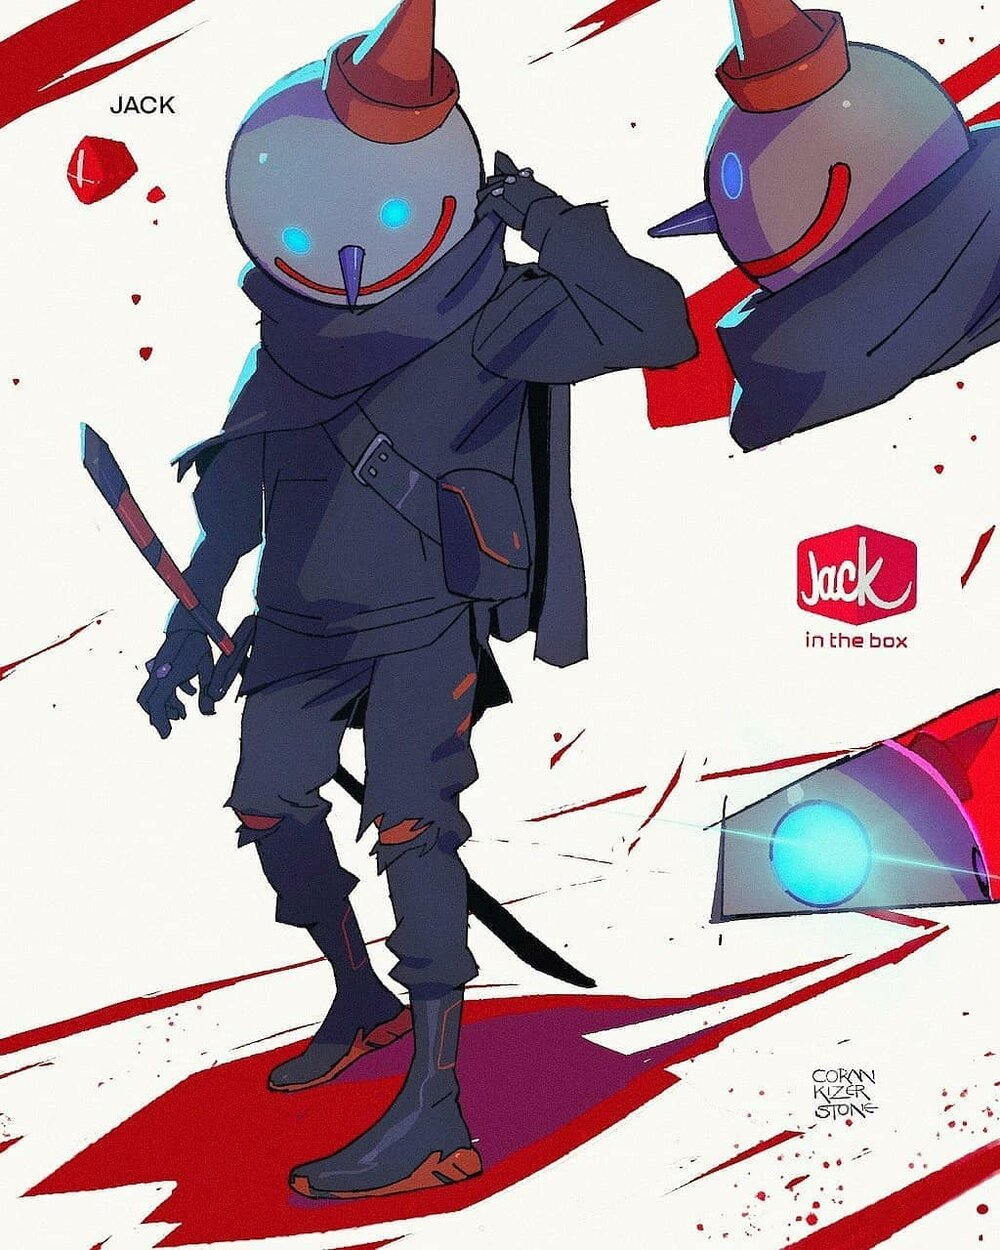 fast-food-mascots-redesigned-as-badass-animated-style-characters6.jpg